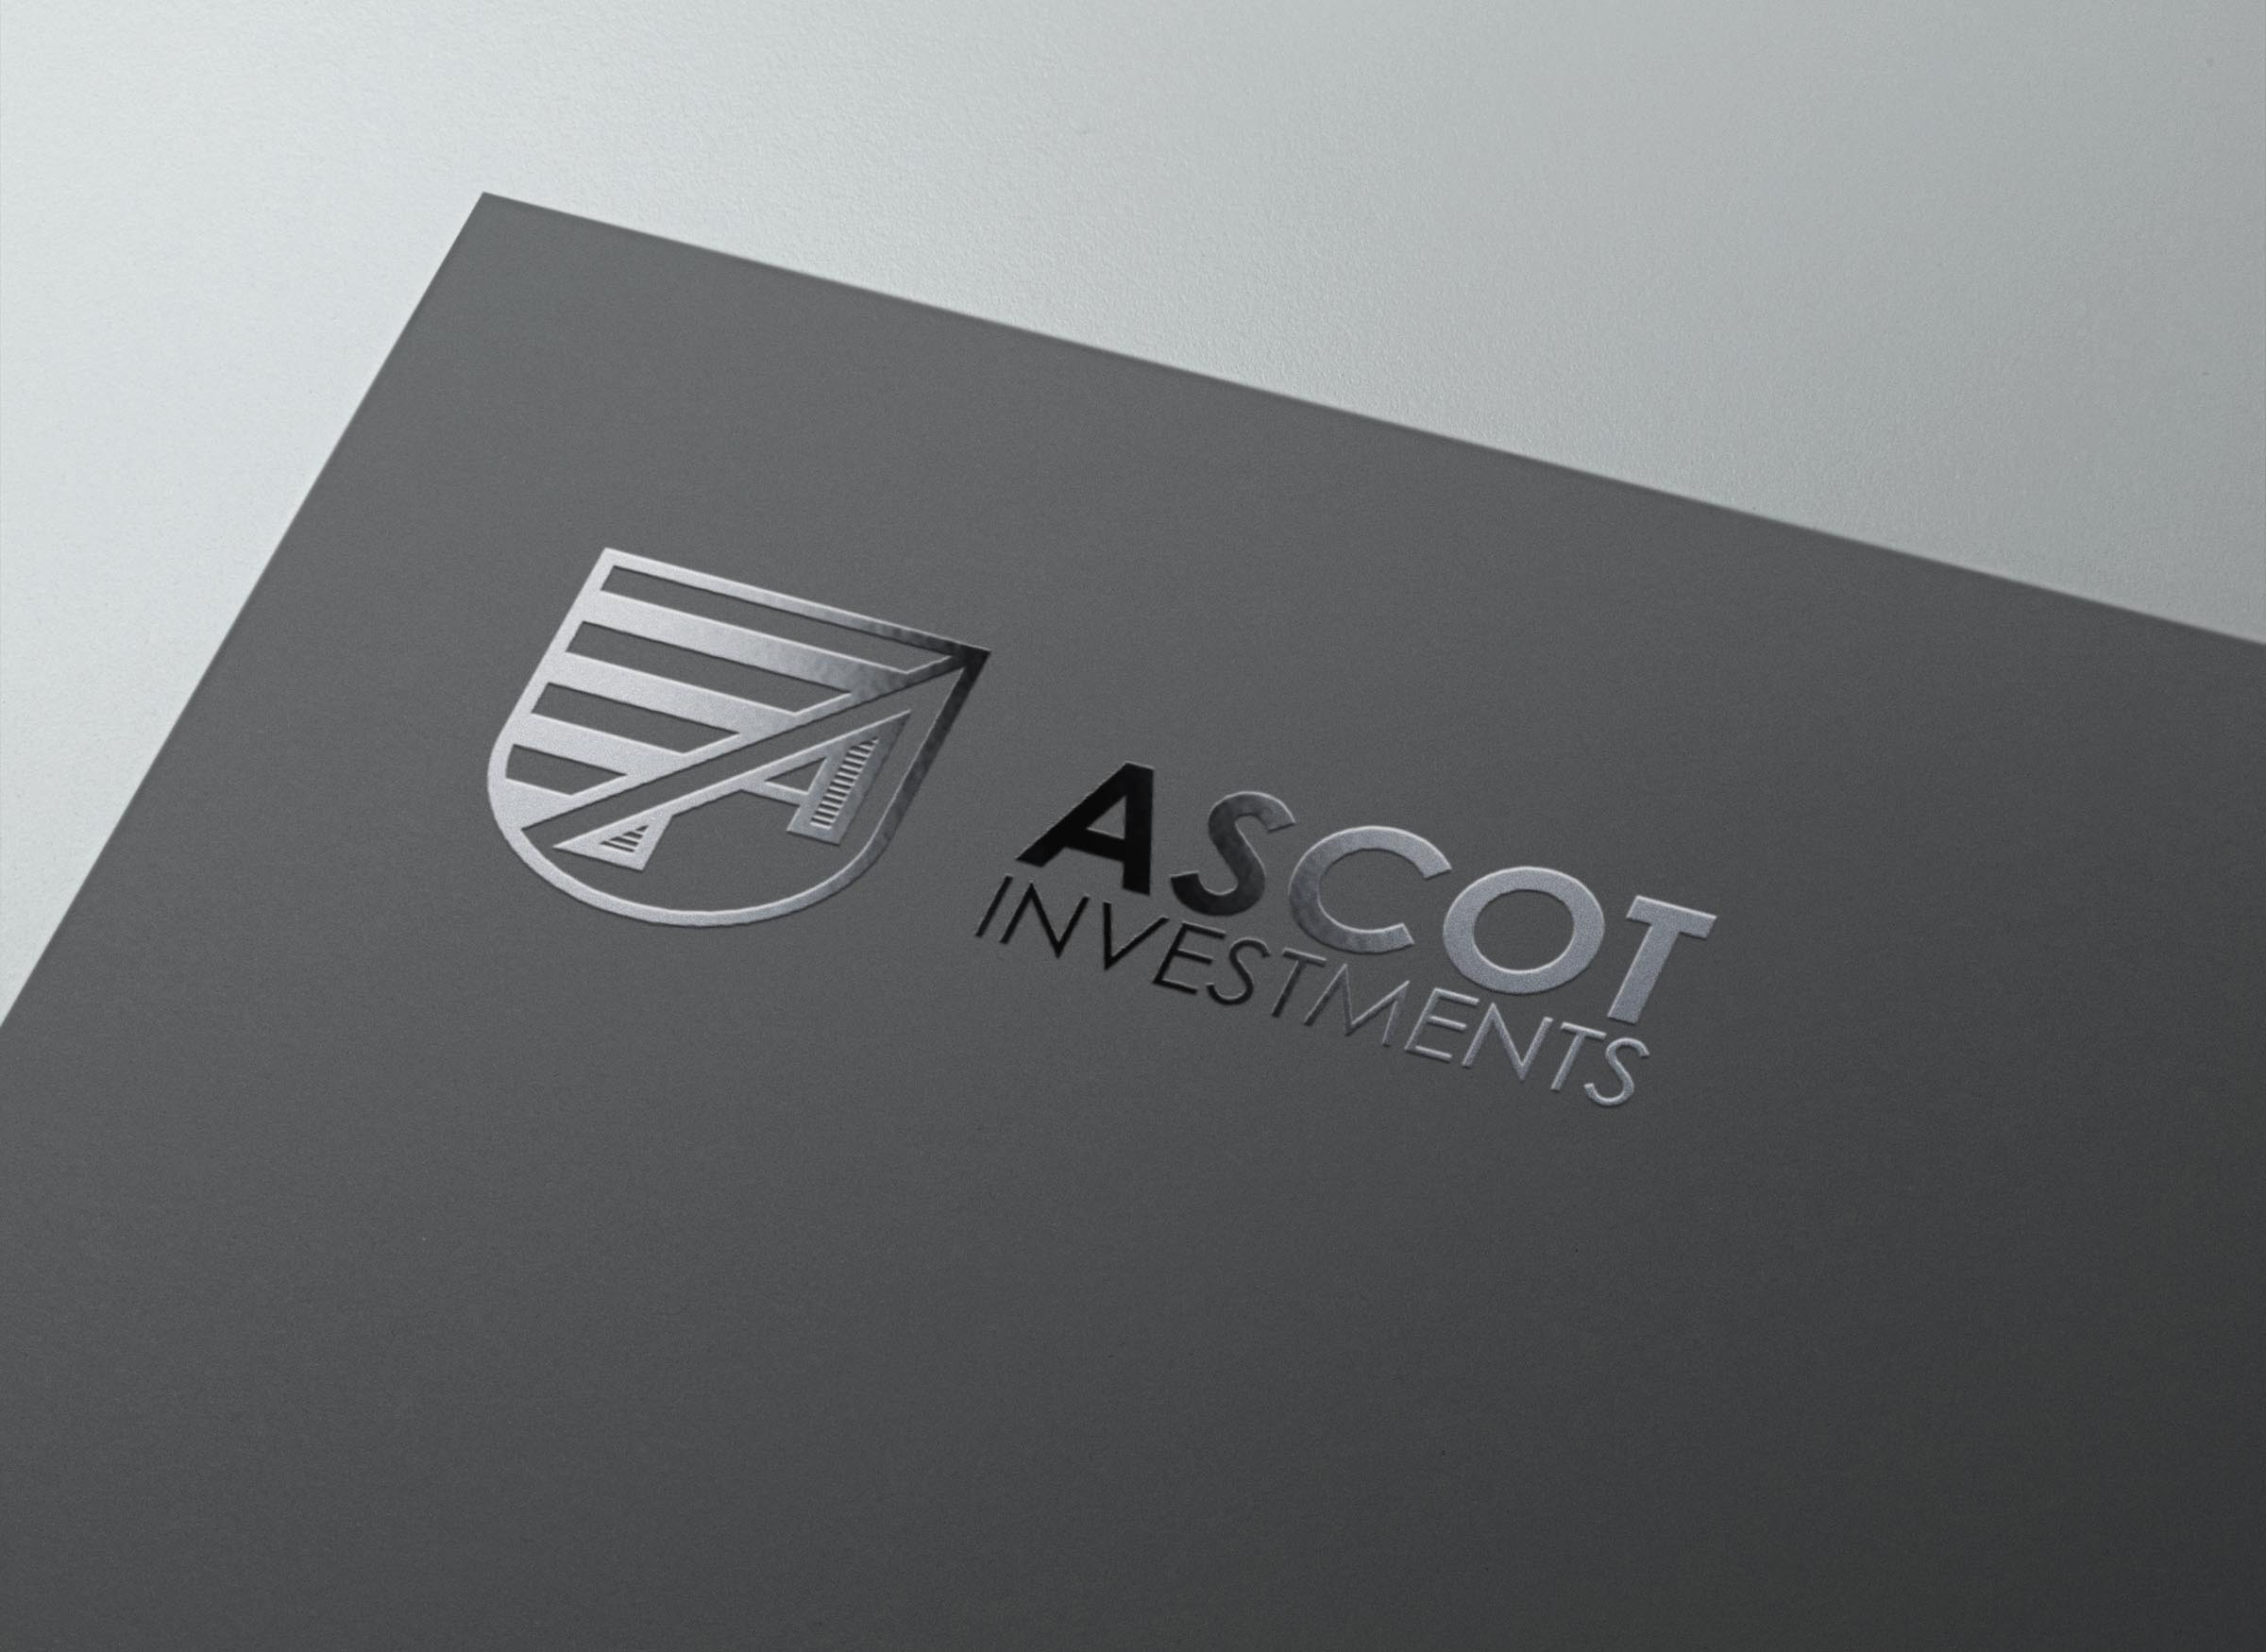 Ascot Investments